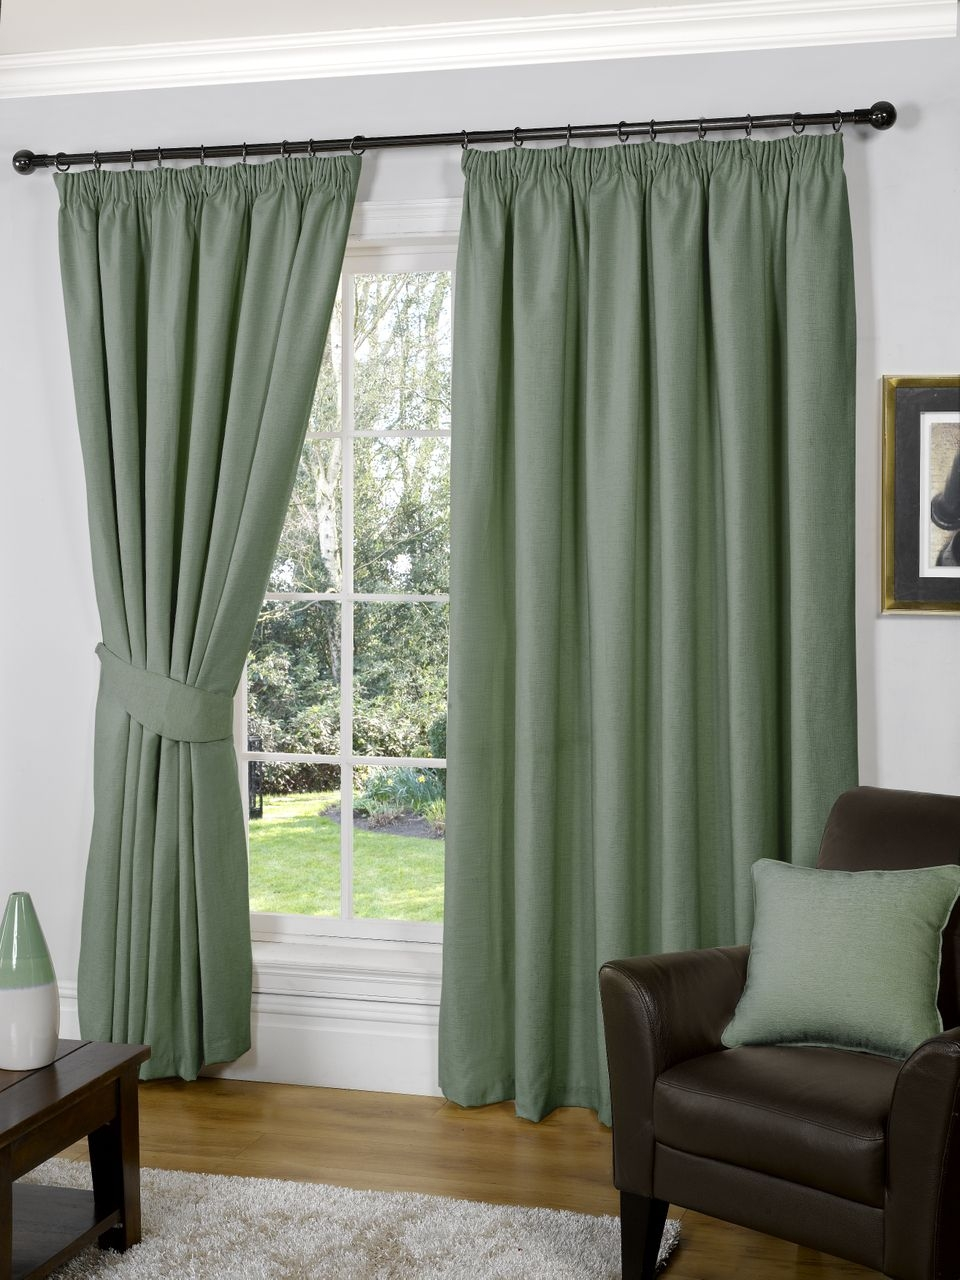 Kitchen Curtains Sage Green Kitchen Curtains Inspiring Regarding Sage Green Kitchen Curtains (Image 13 of 25)